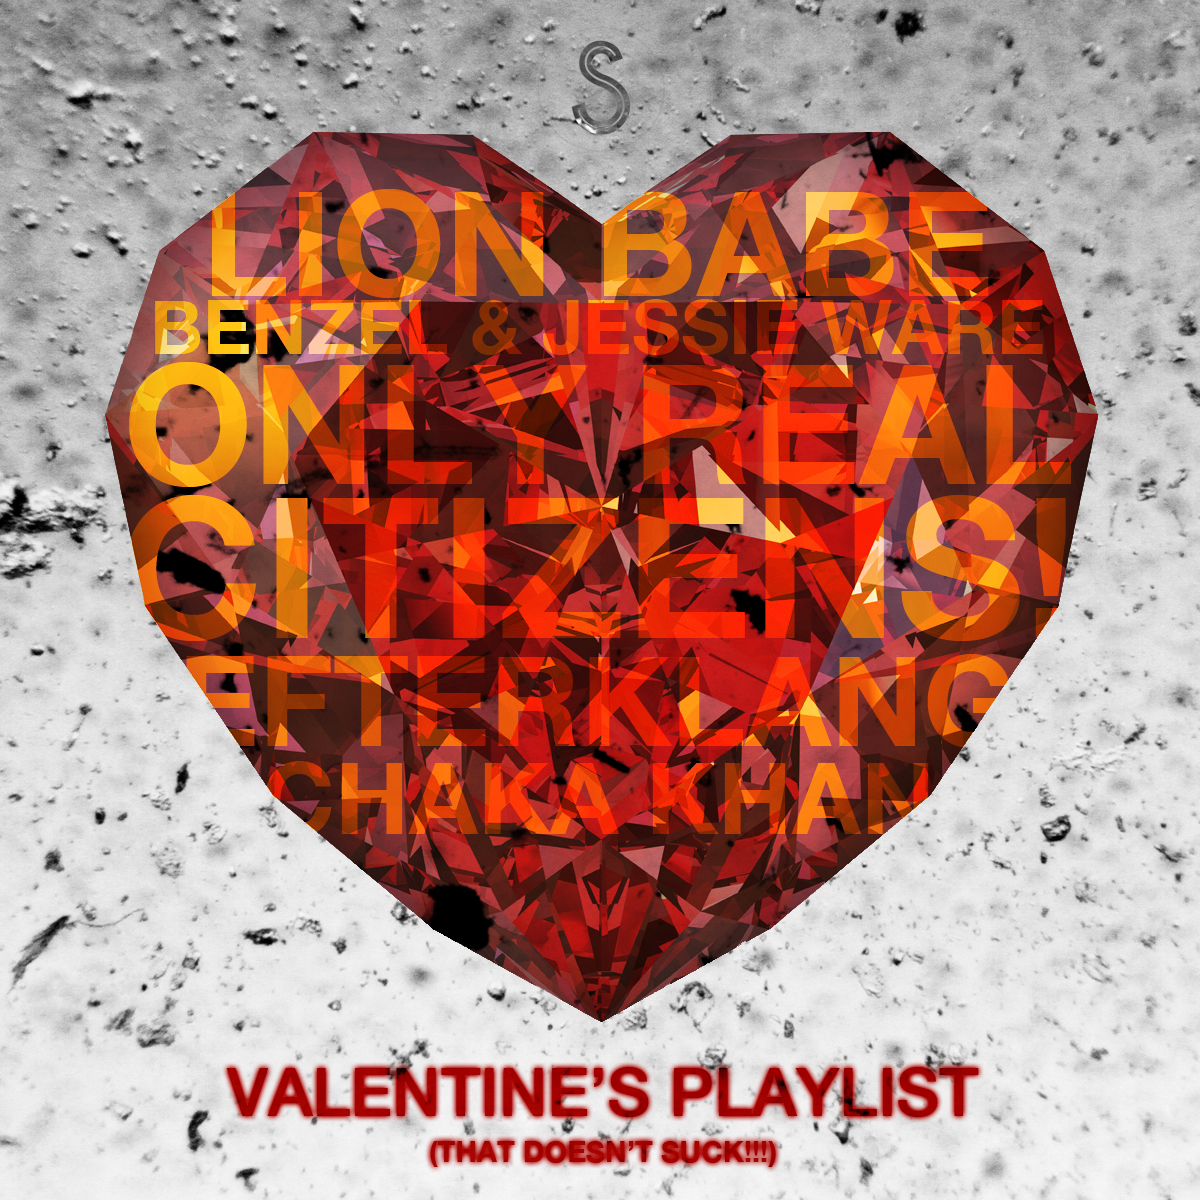 6 tracks for Valentine's Day (that don't suck!!)